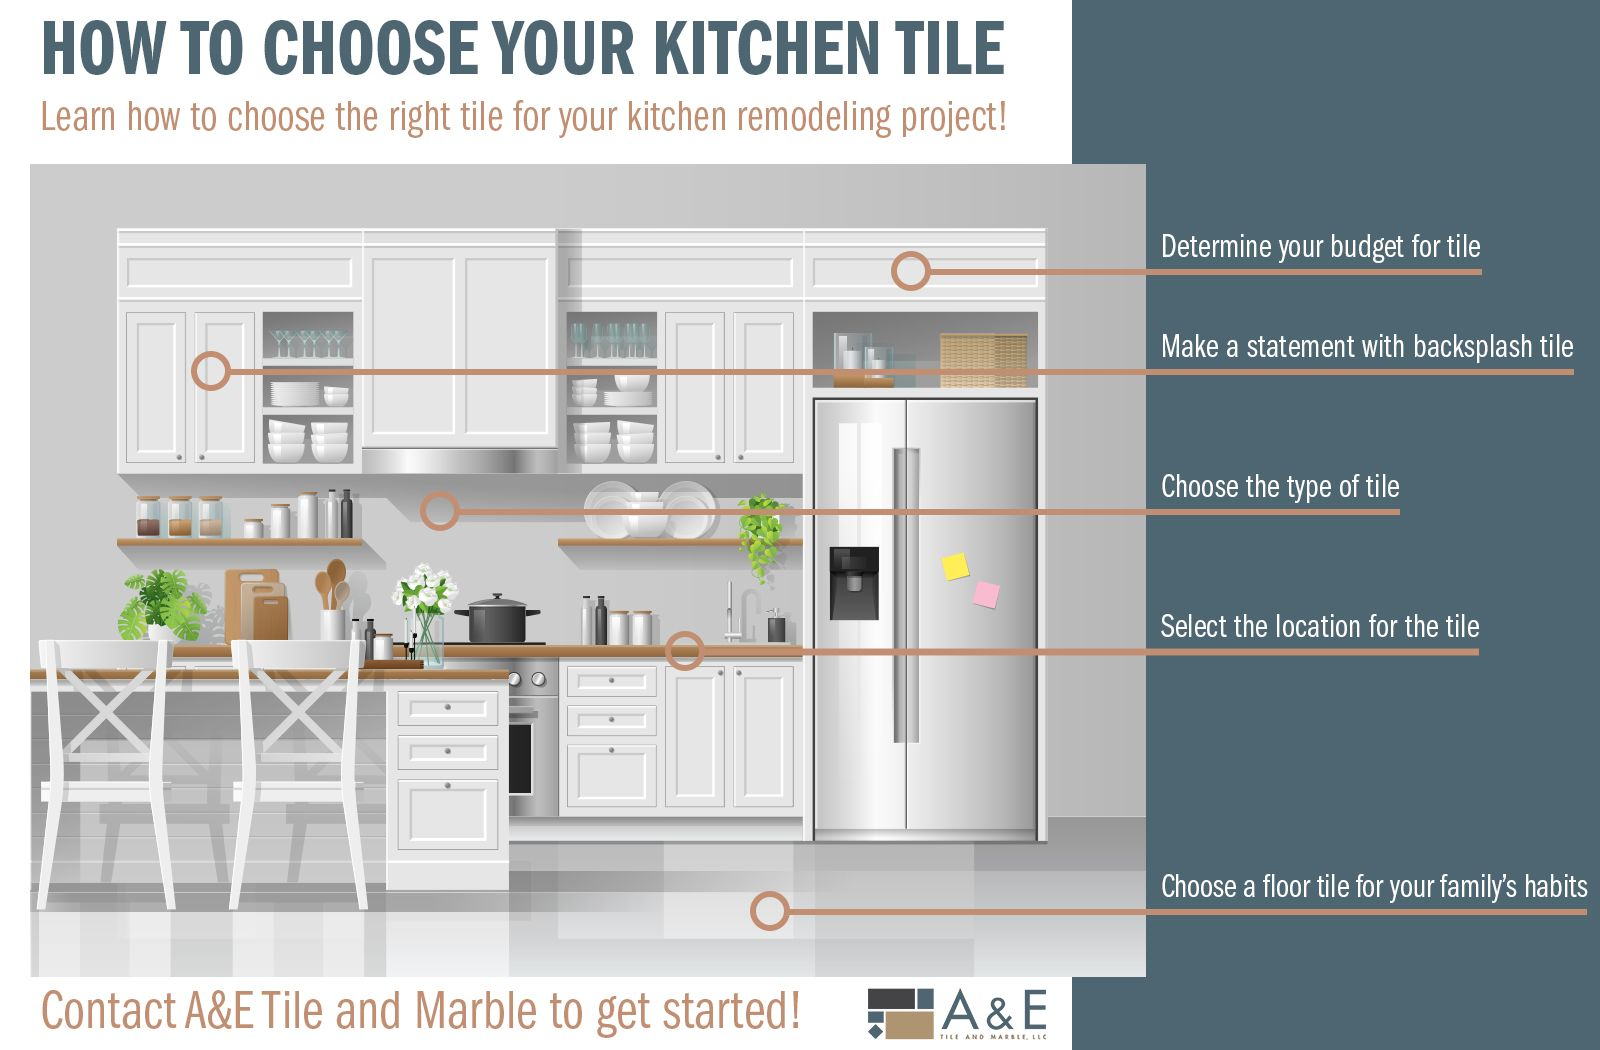 How To Choose Your Kitchen Tile.jpg